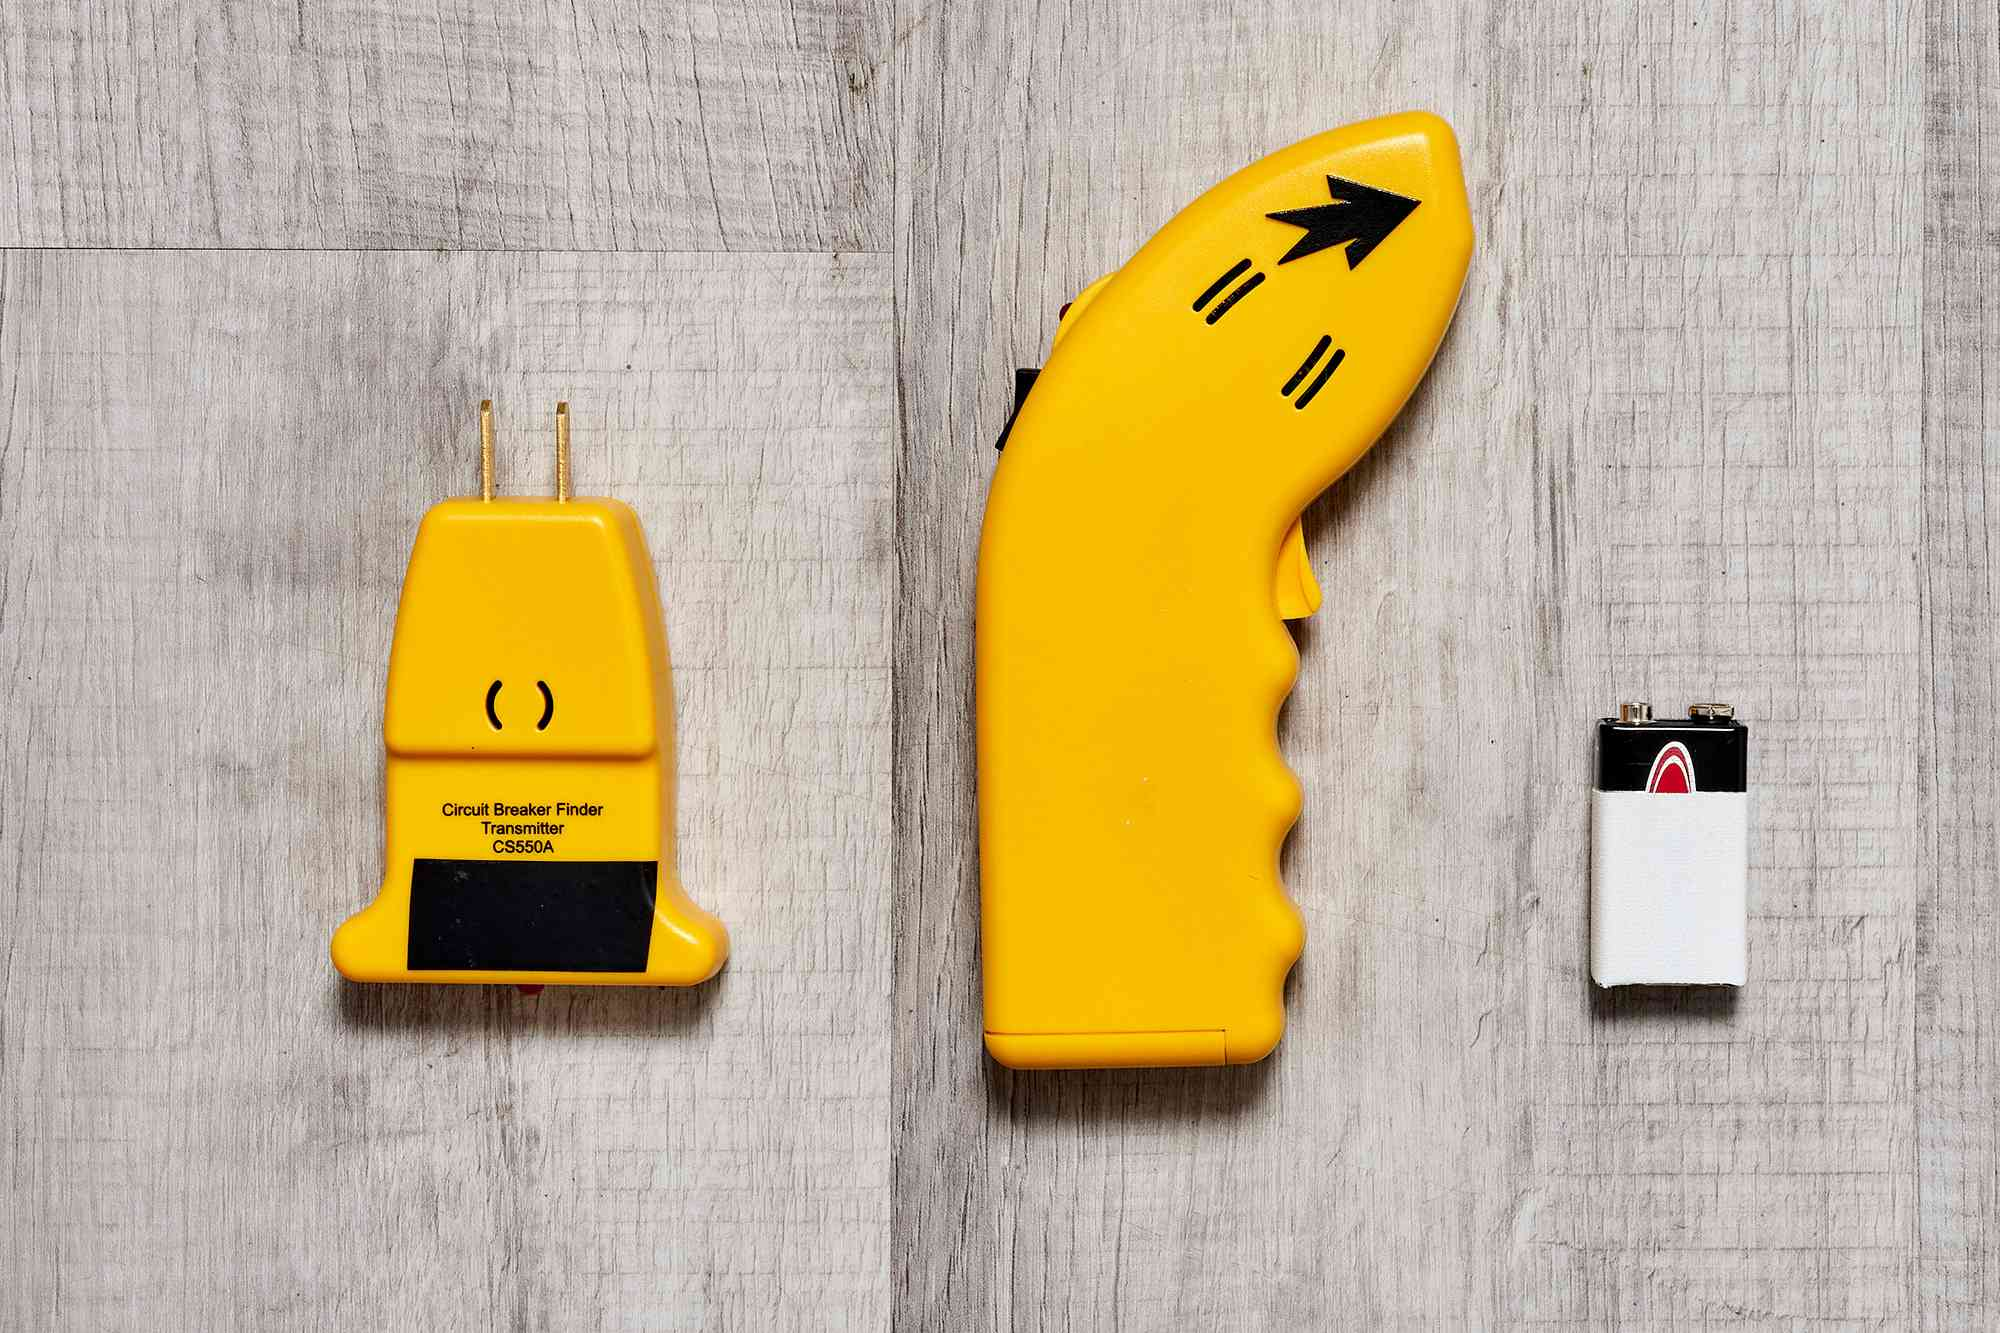 Circuit breaker finder and 9-volt battery on wooden surface